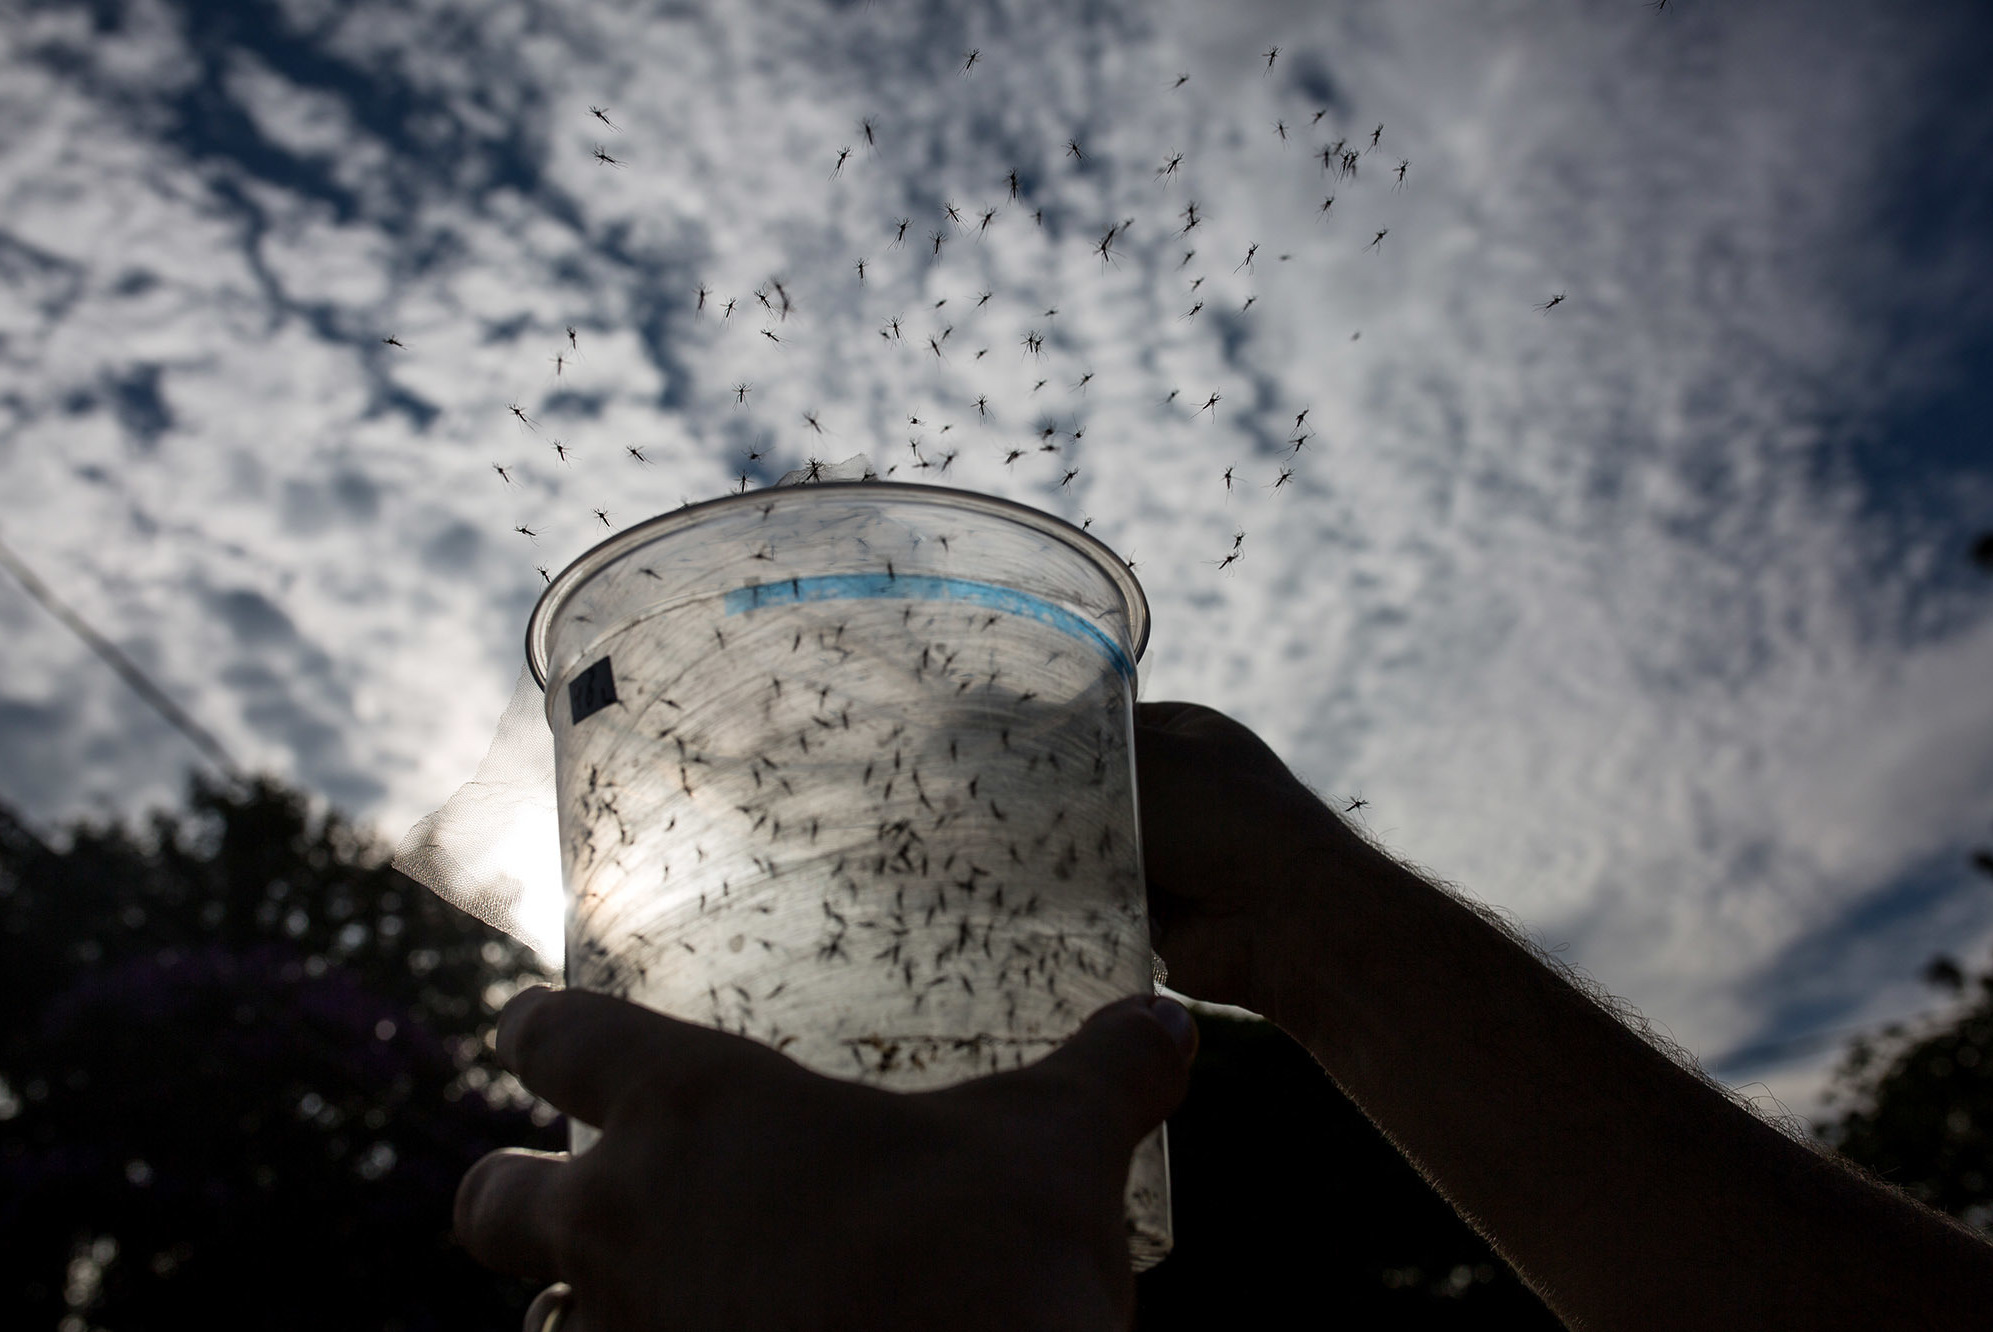 Genetically modified mosquitoes are released in Piracicaba, Brazil, in an effort to combat Zika virus. These mosquitoes were modified using conventional techniques. Victor Moriyama/Getty Images